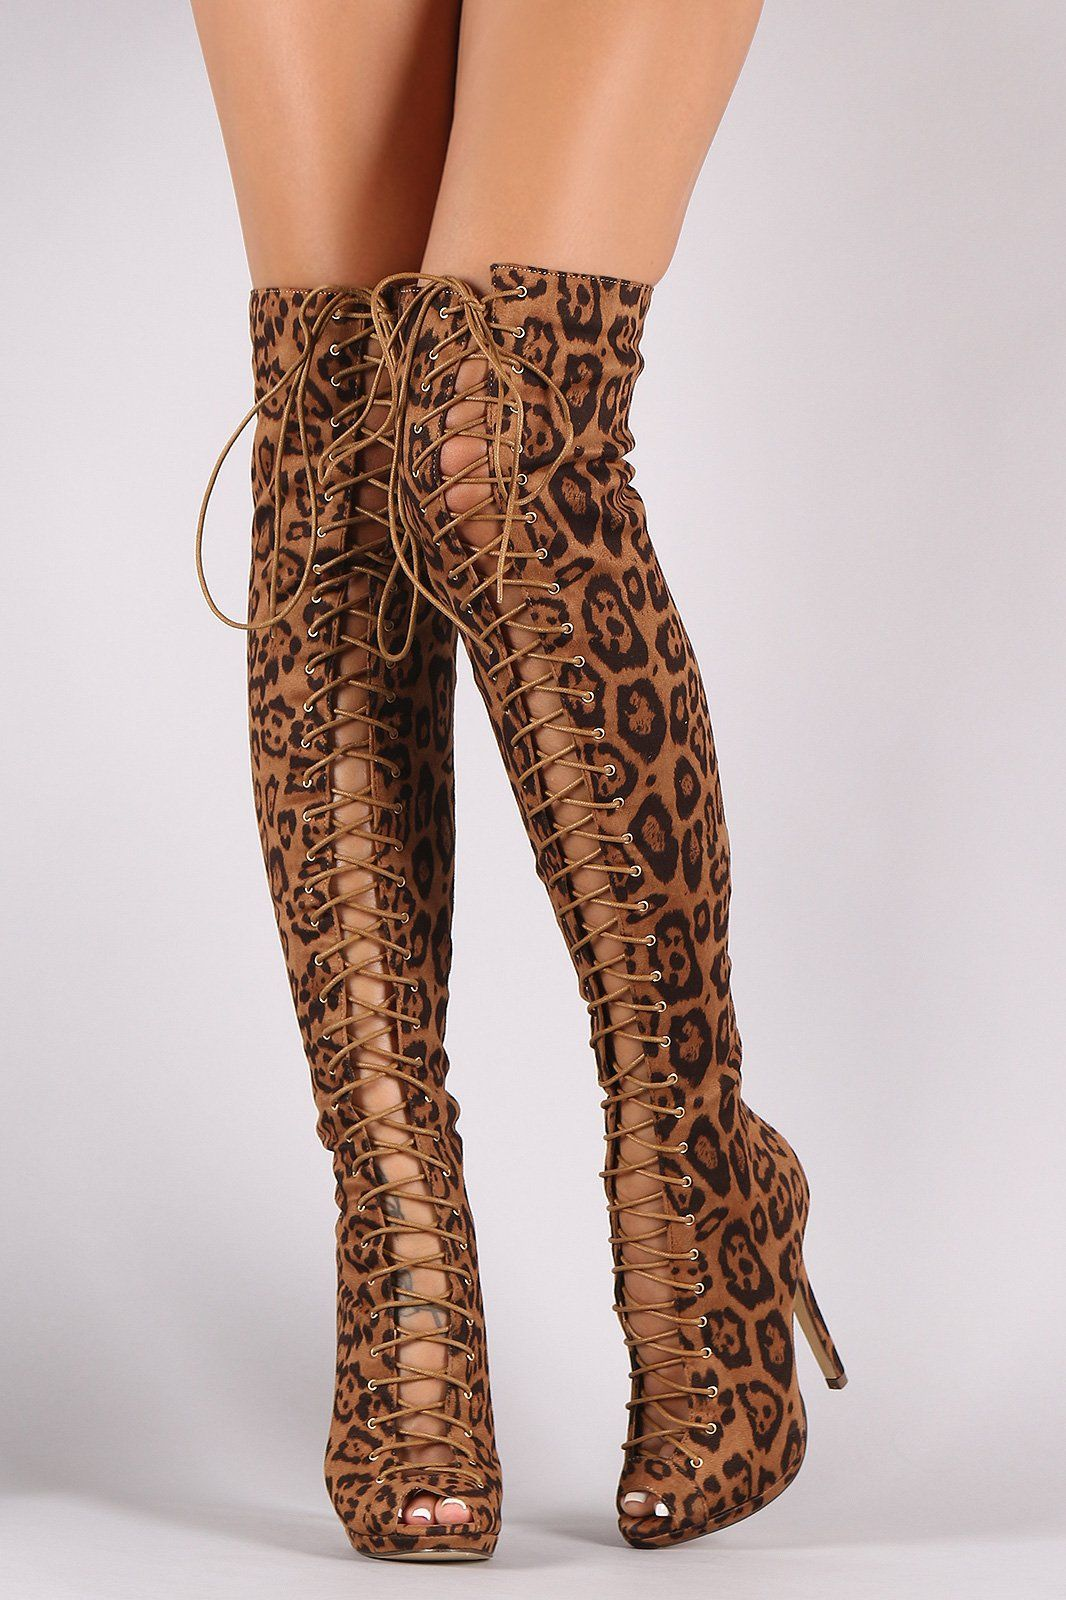 8a75d59be5e2 These striking over the knee boots feature a leopard print vegan suede